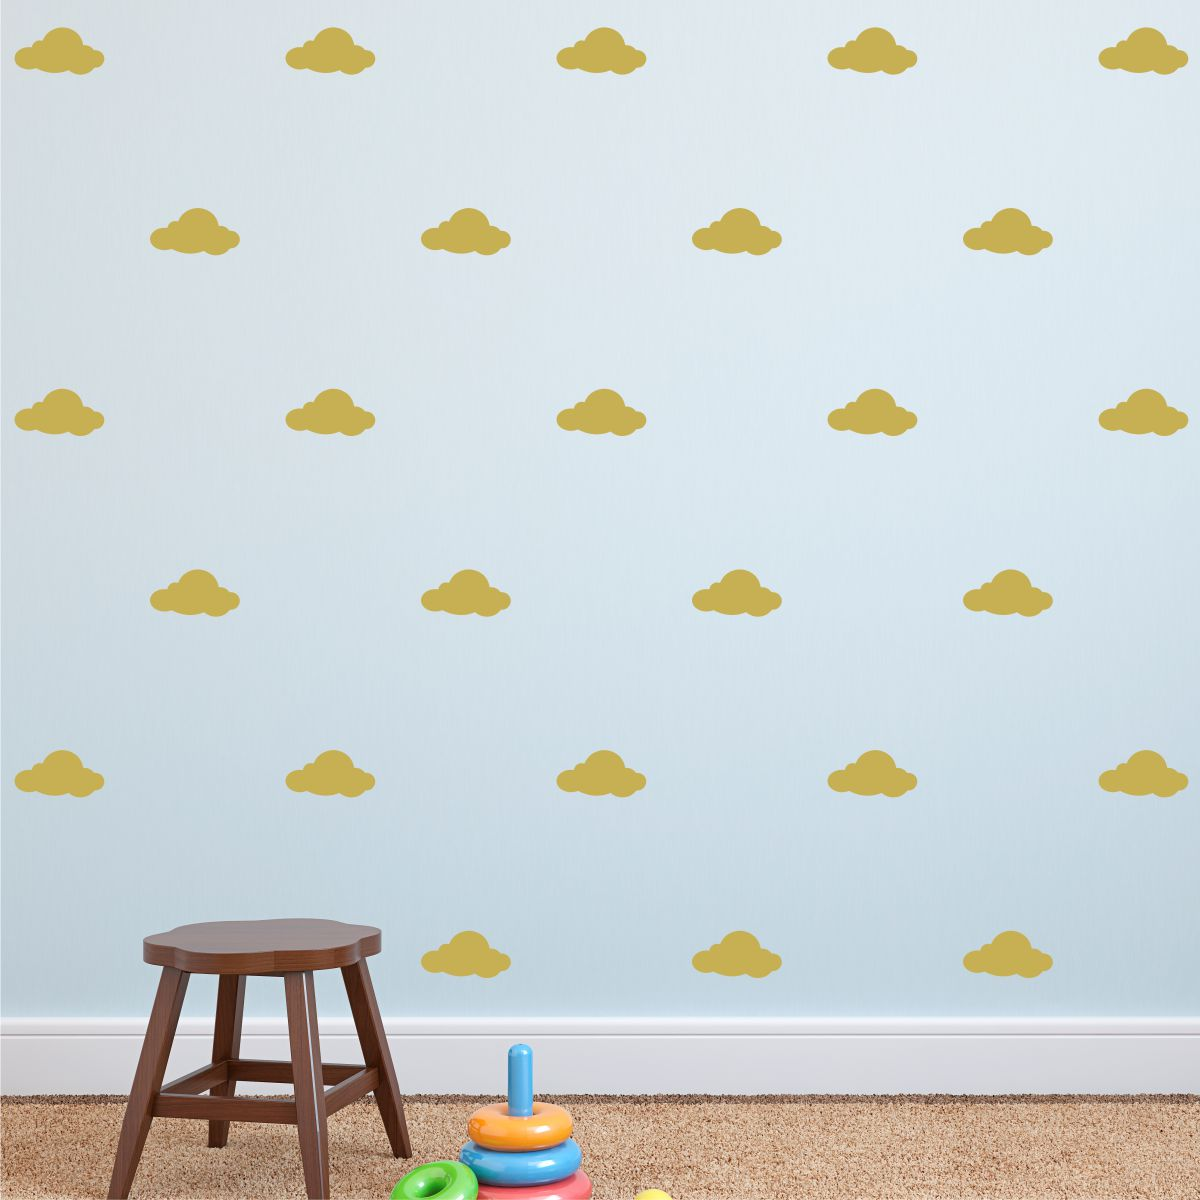 Clouds Wall Quotes Wall Art Decal Kit WallQuotescom - Nursery wall decals clouds